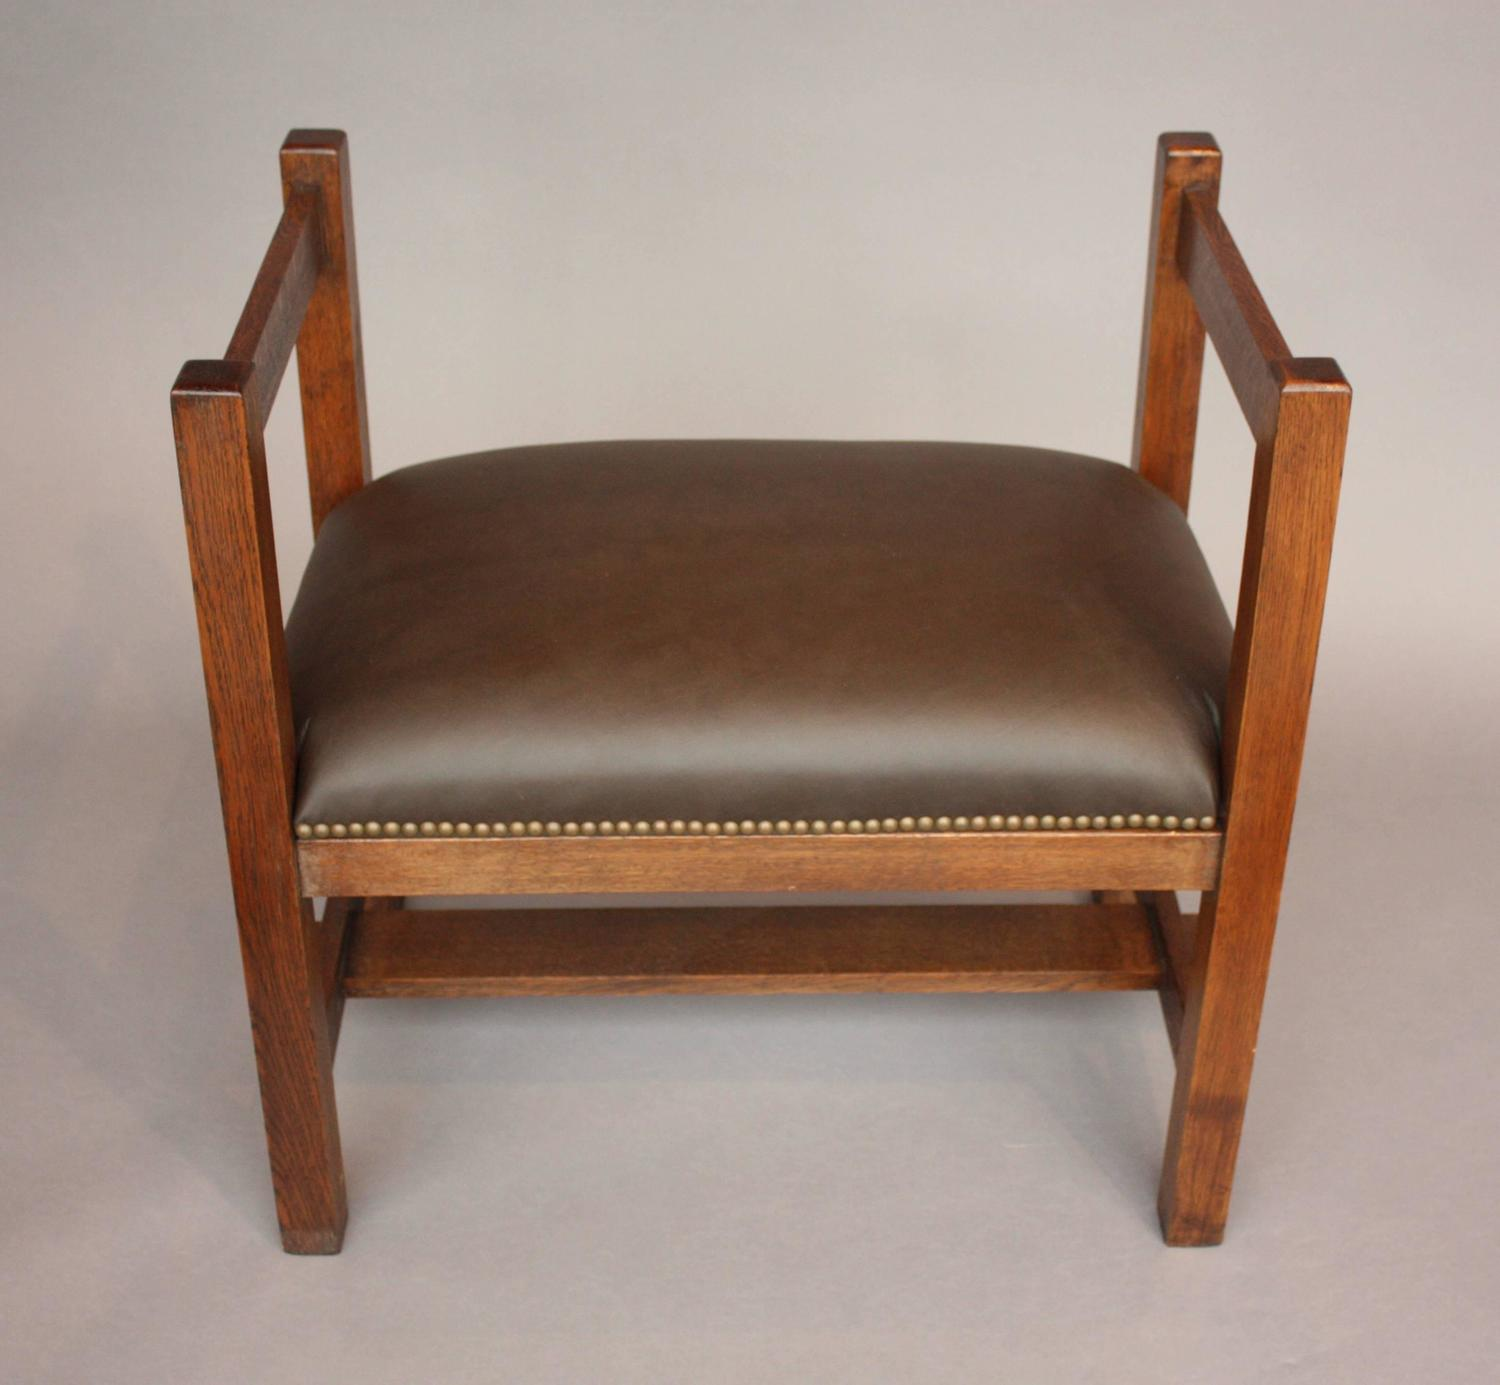 Elegant Arts And Crafts Mission Bench Circa 1910 At 1stdibs